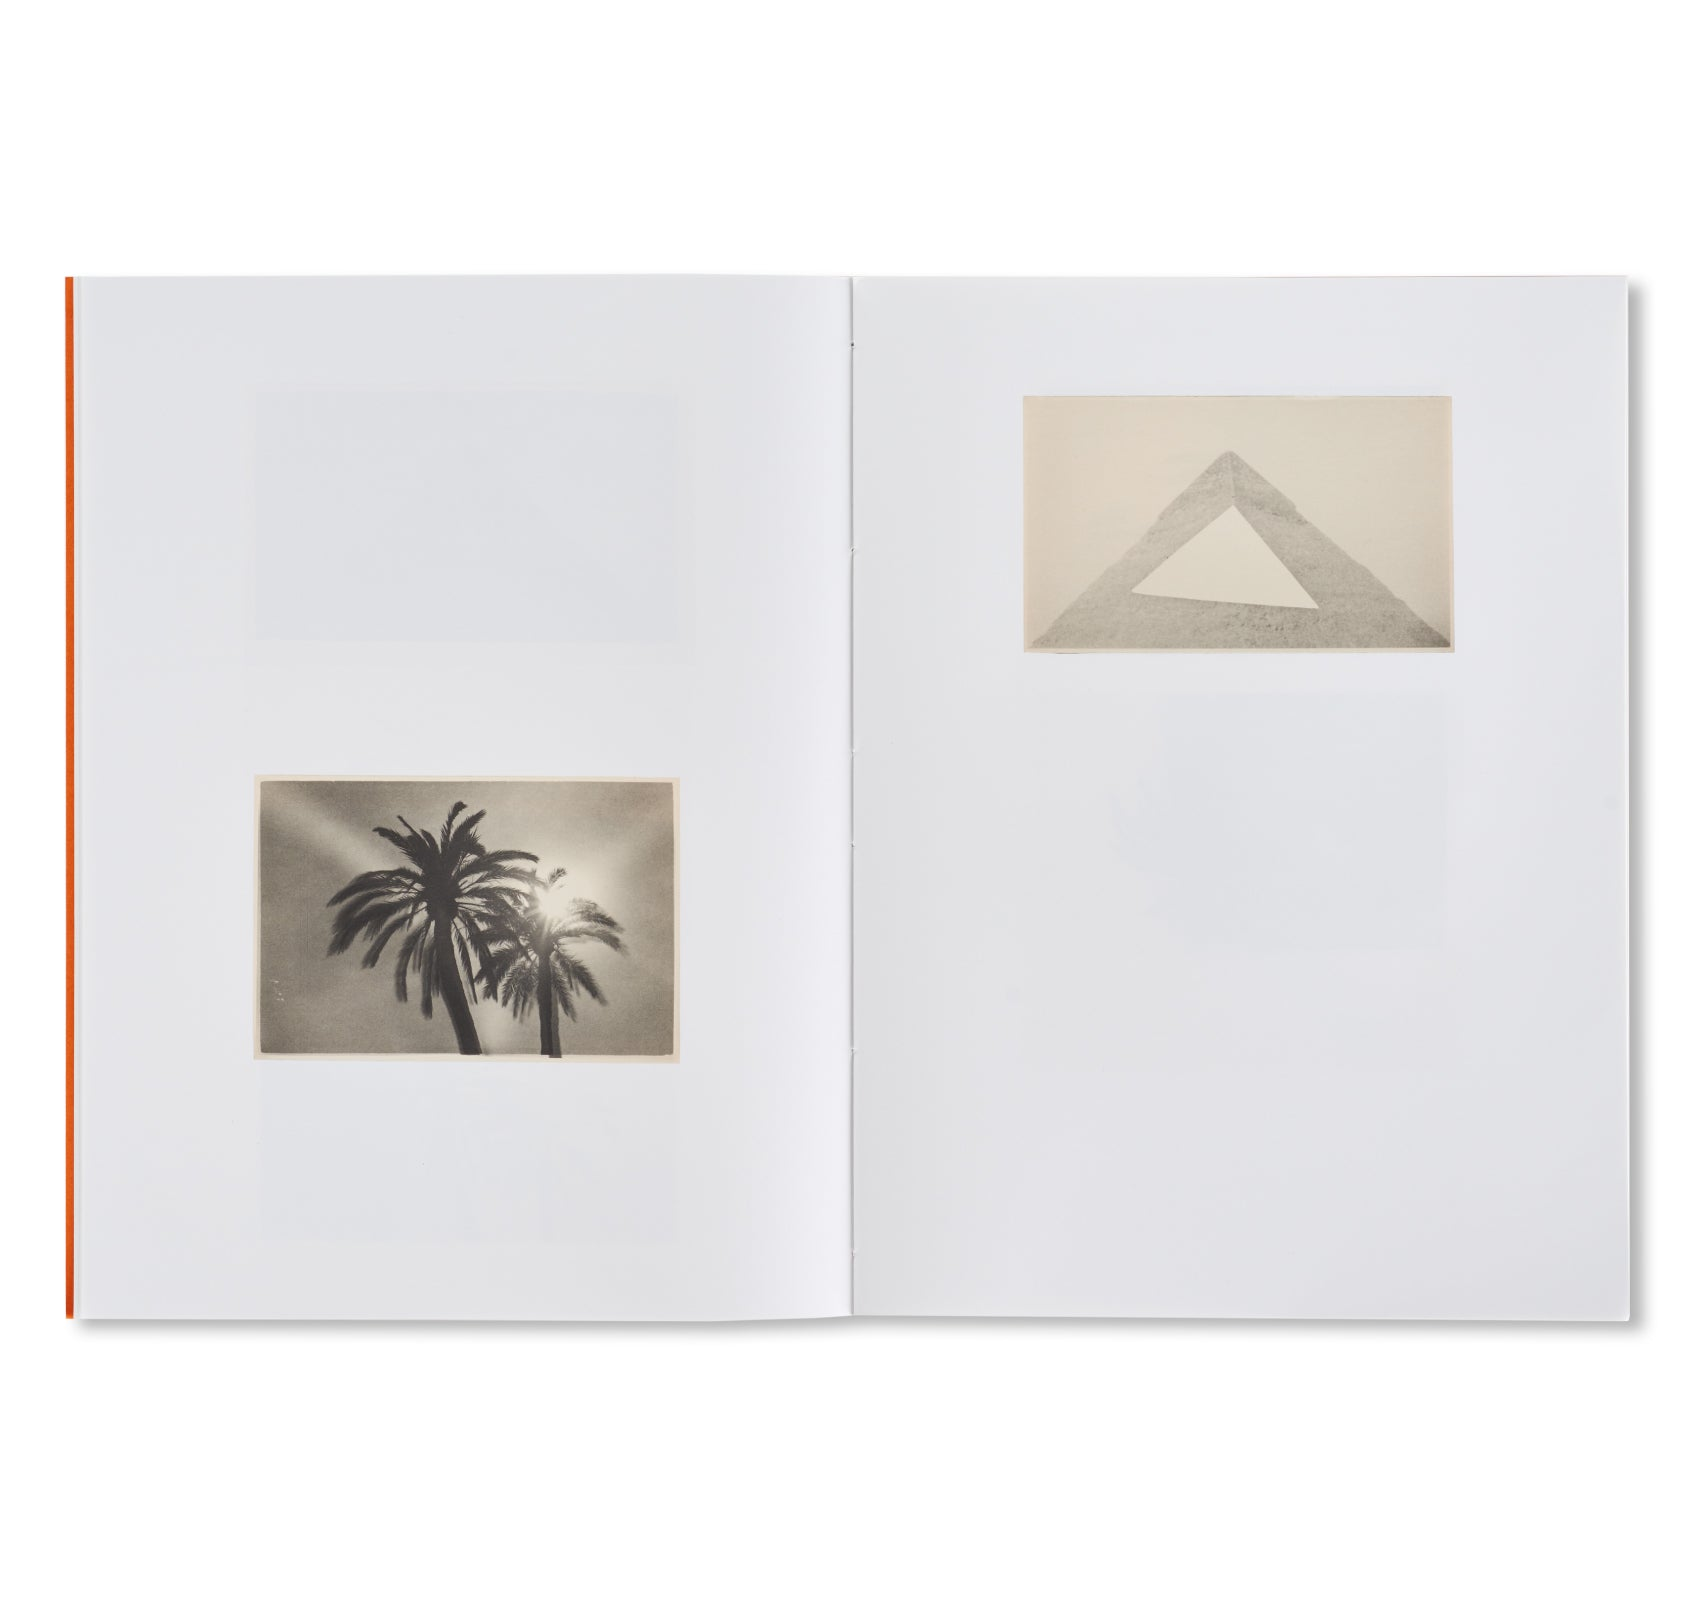 THE PYRAMIDS AND PALM TREES TEST by Bruno V. Roels [SPECIAL EDITION]